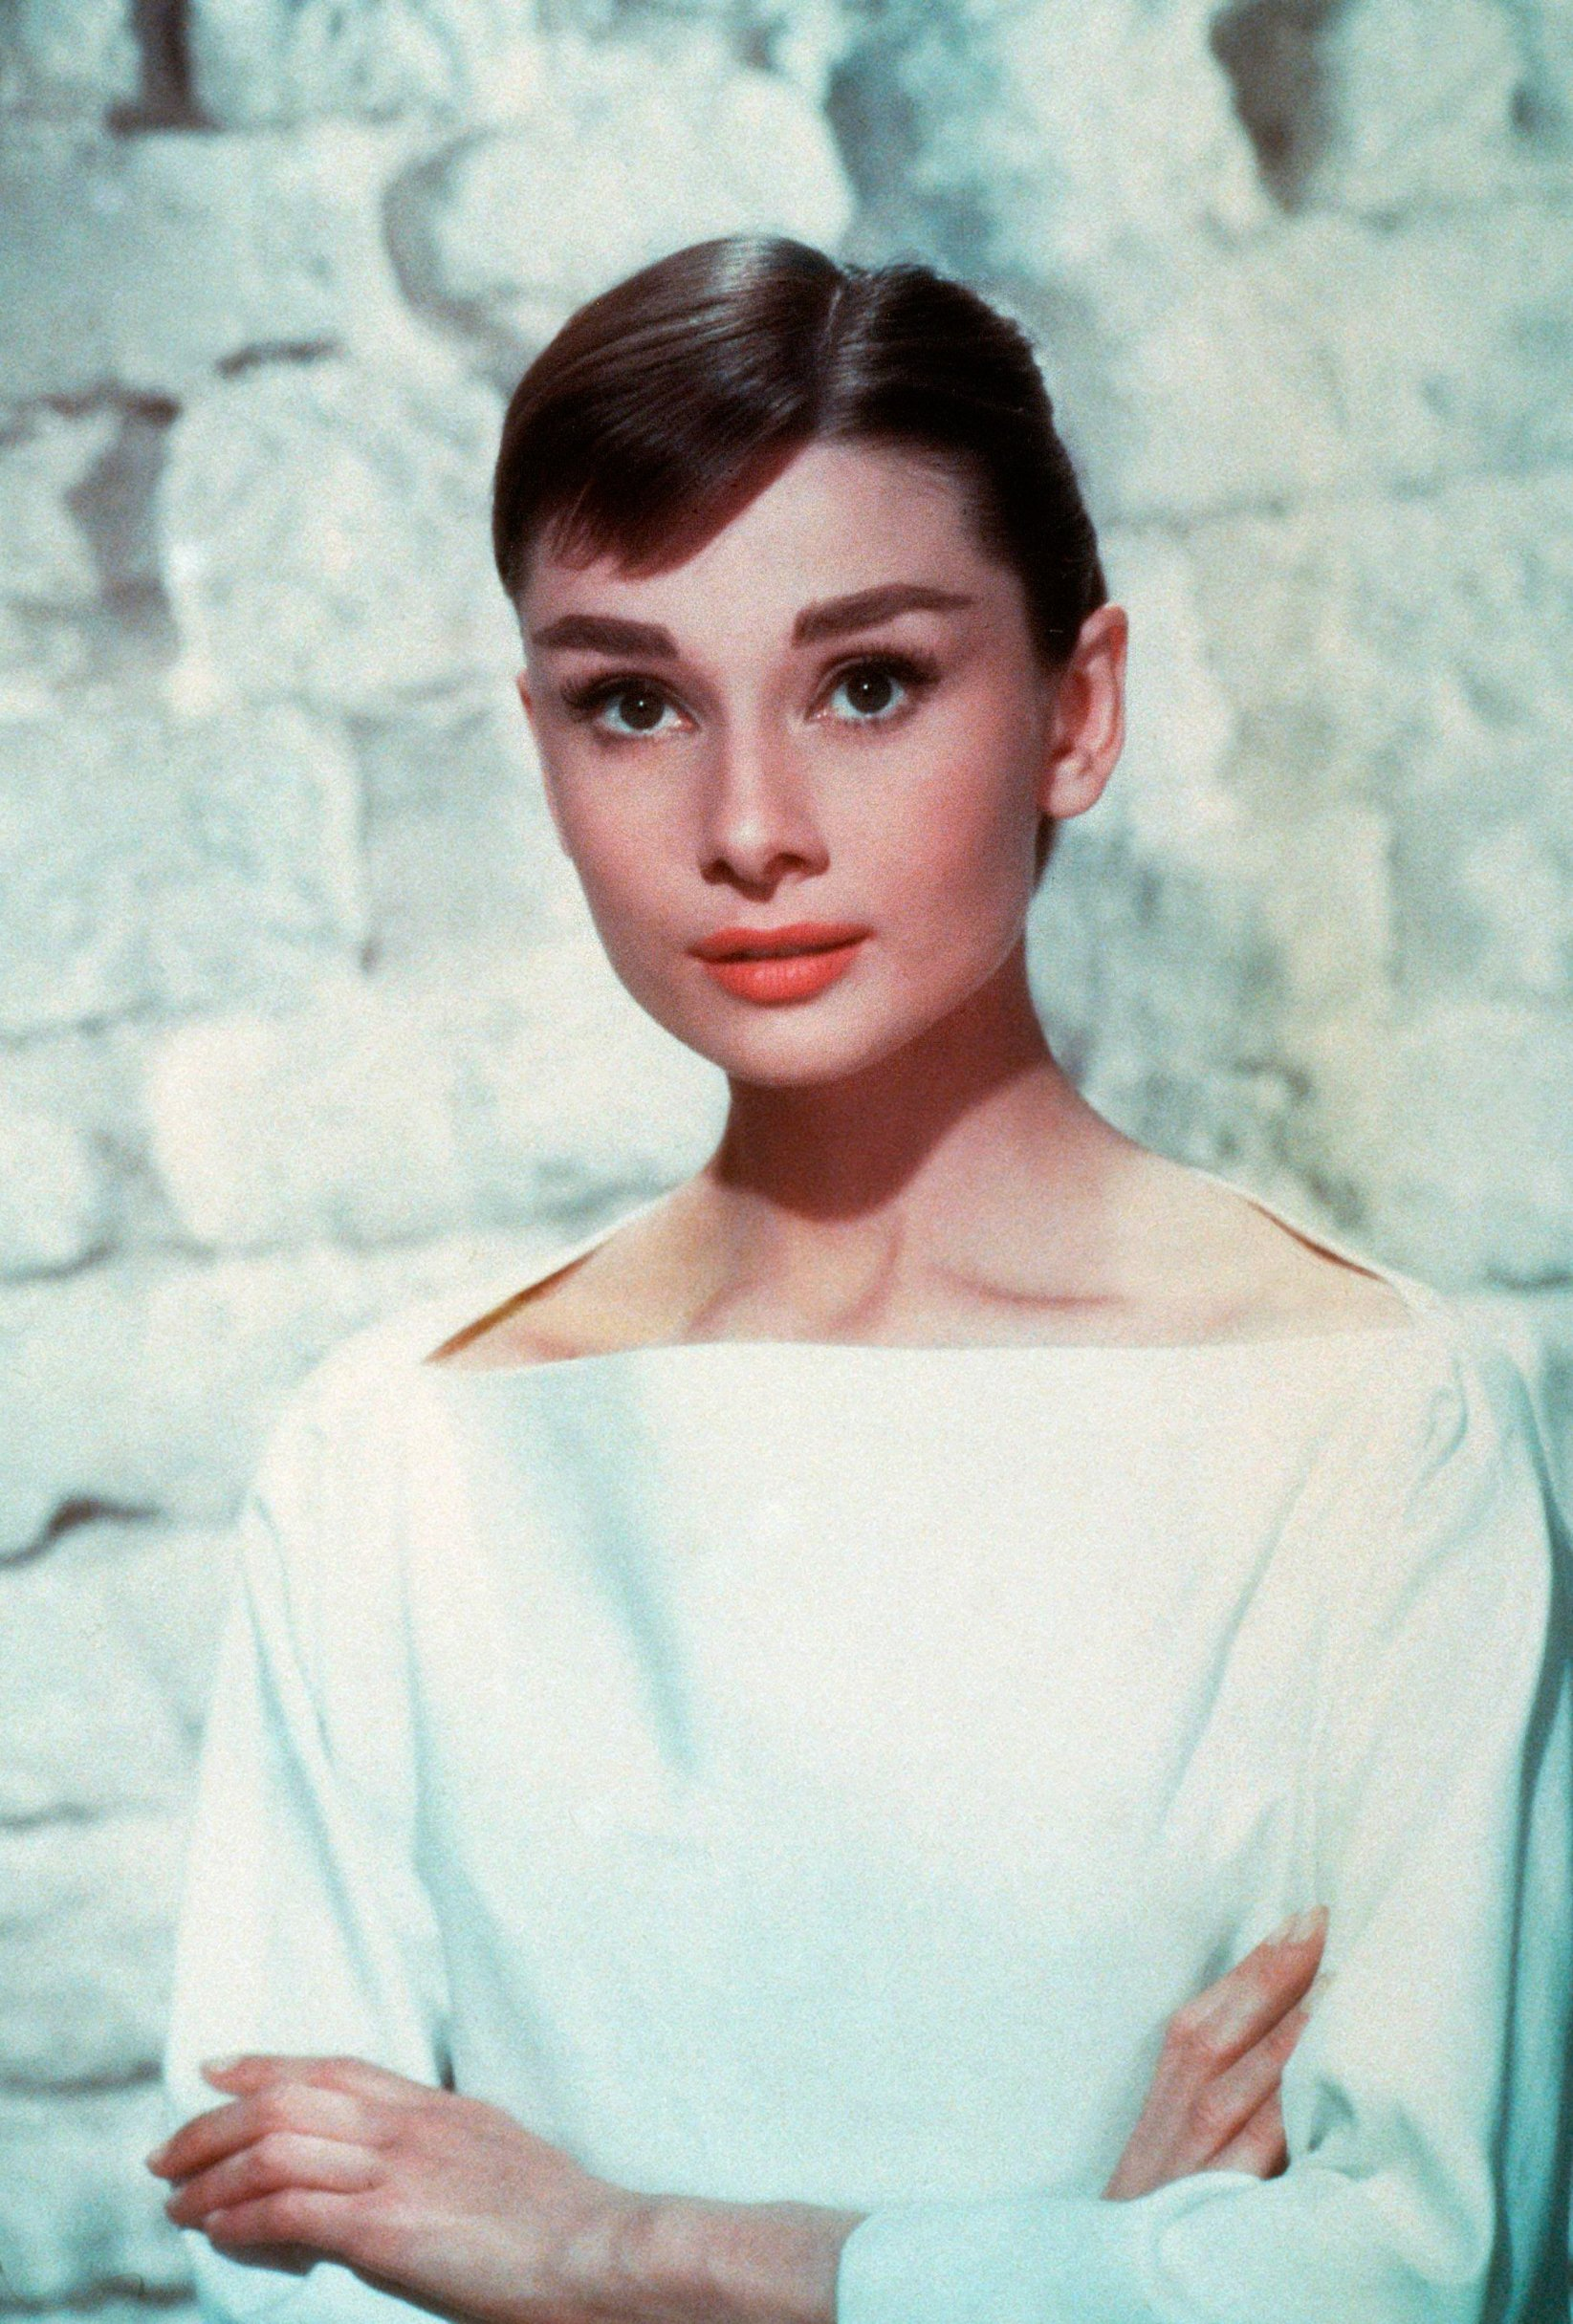 Audrey Hepburn, circa 1956, Image: 269950852, License: Rights-managed, Restrictions: NO ITALY, GERMANY, BENELUX, USA or AUSTRALIA - Fee Payable Upon Reproduction - For queries contact Photoshot - sales@photoshot.com  London: +44 (0) 20 7421 6000  Florida: +1 239 689 1883  Berlin: +49 (0) 30 76 212 251, Model Release: no, Credit line: Profimedia, Uppa entertainment